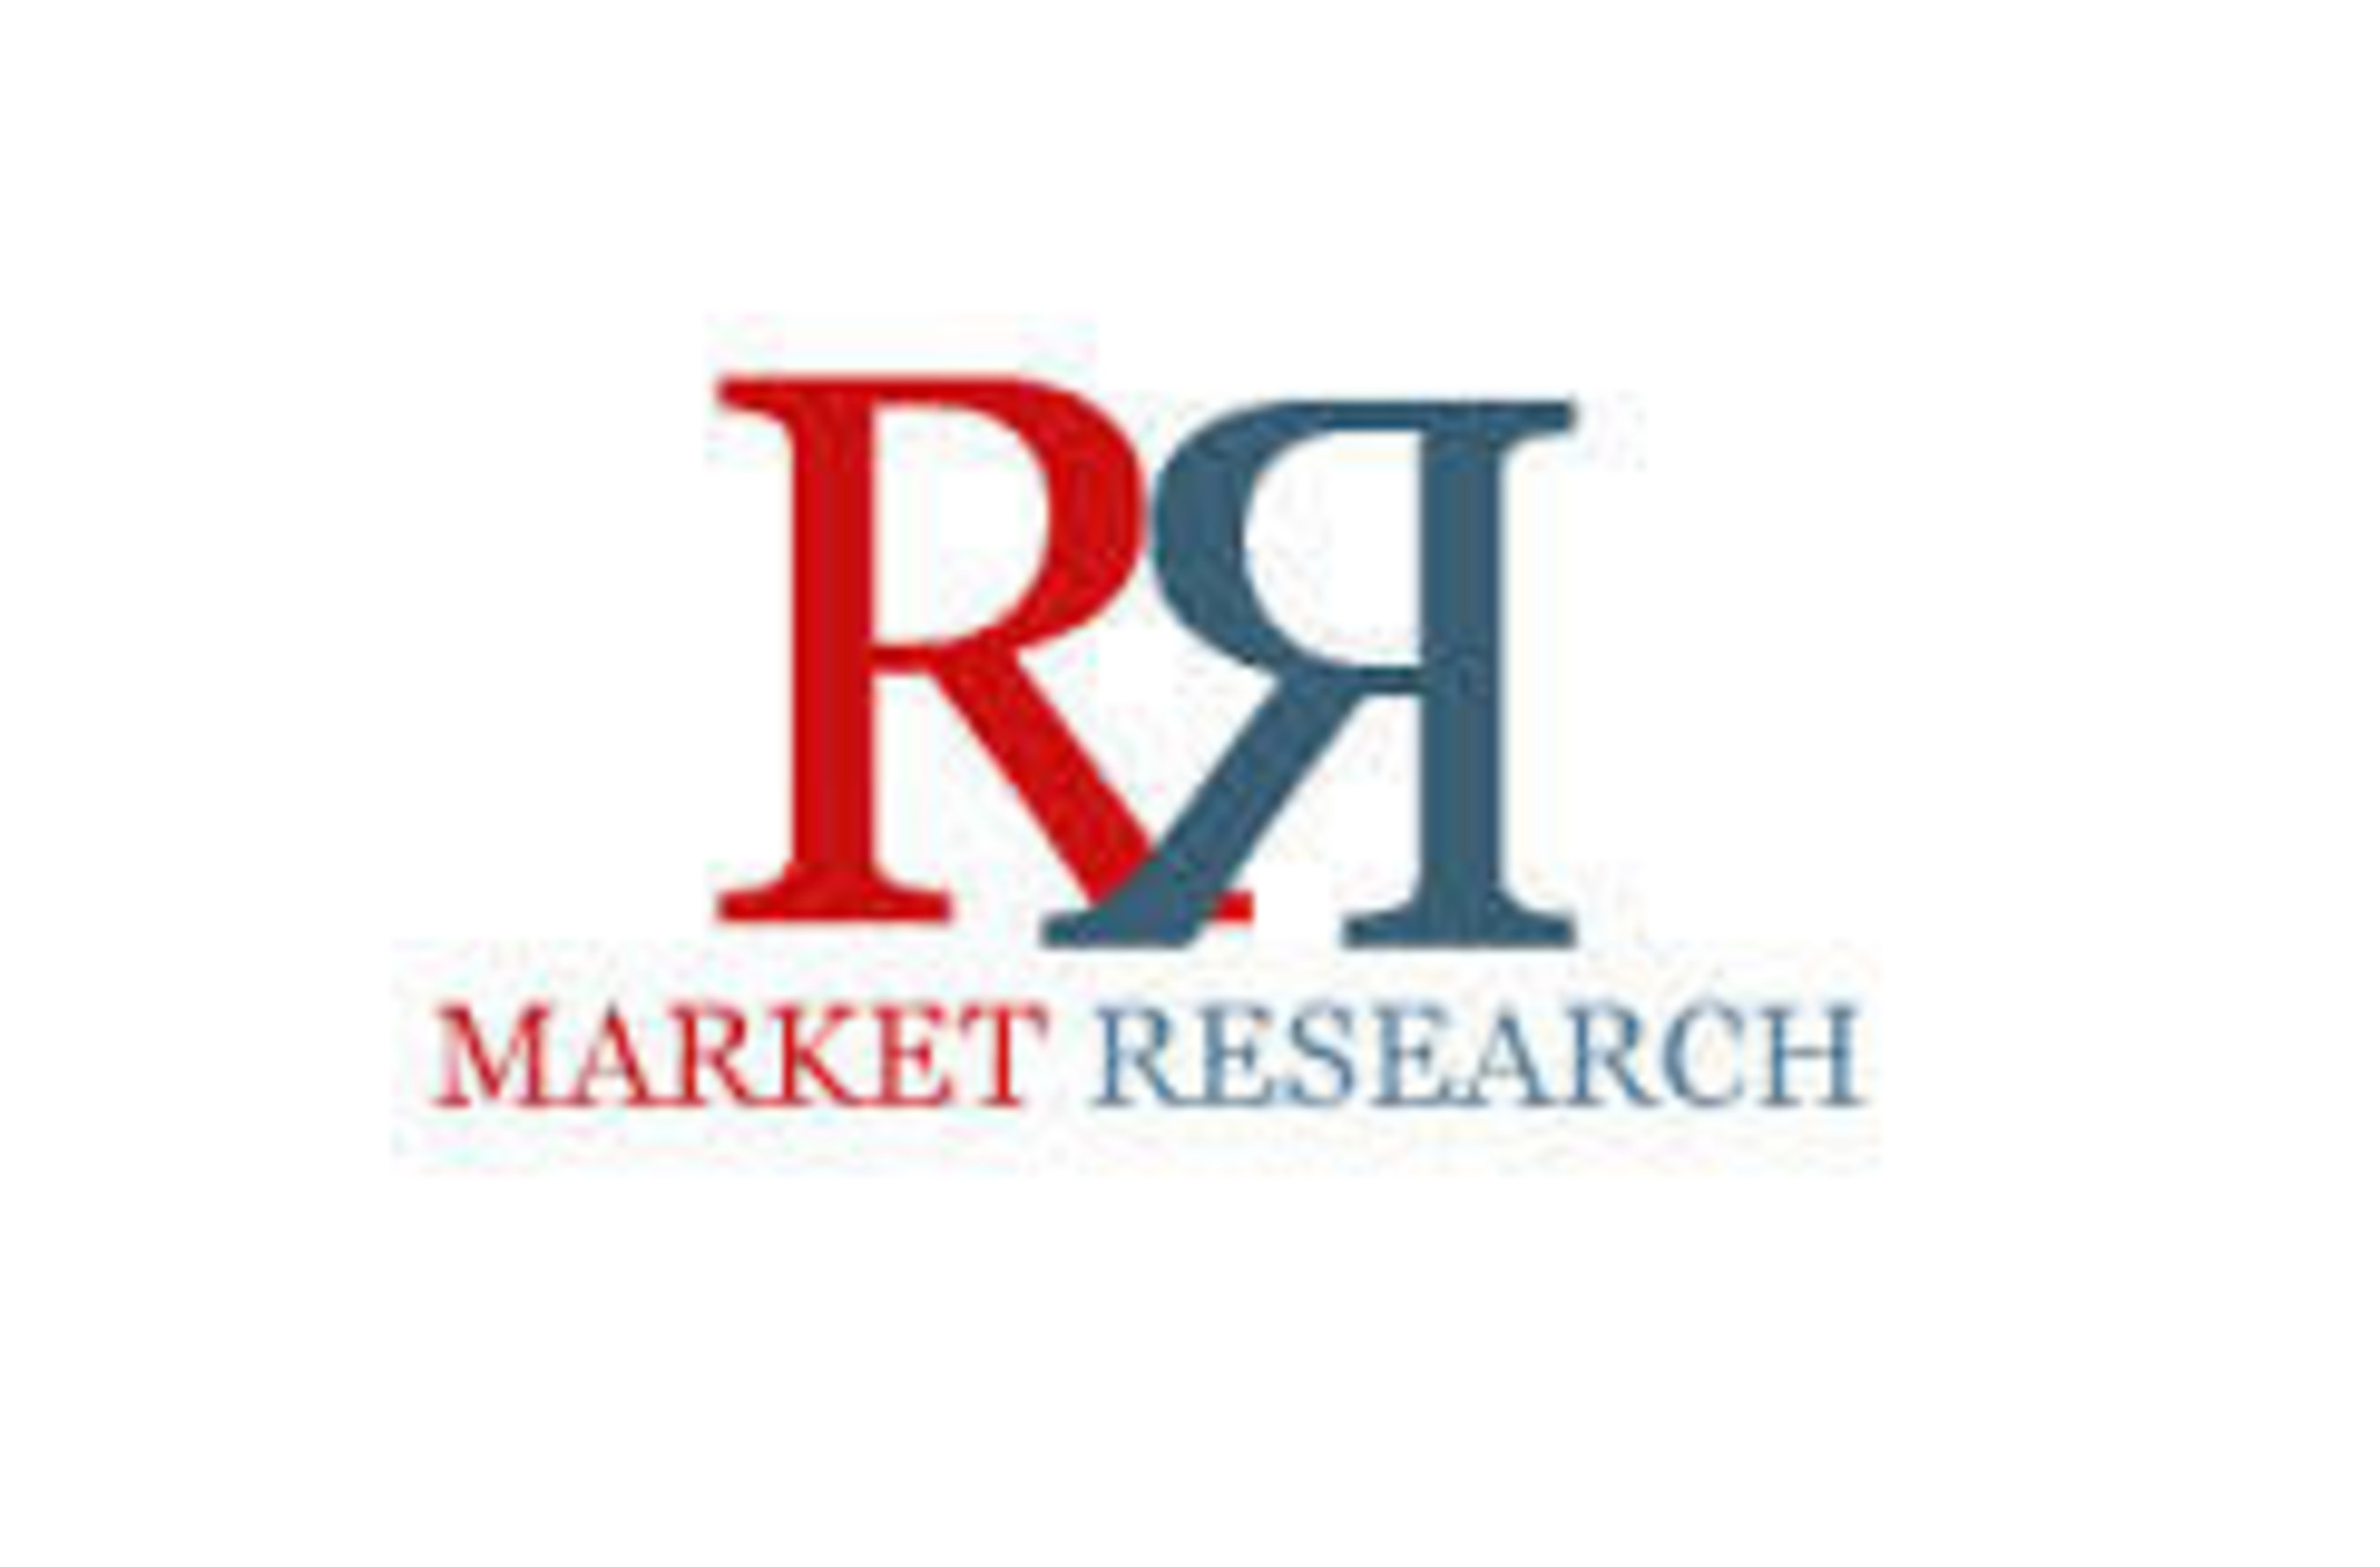 Global Surface Computing Market to Record 36.57% CAGR to 2020